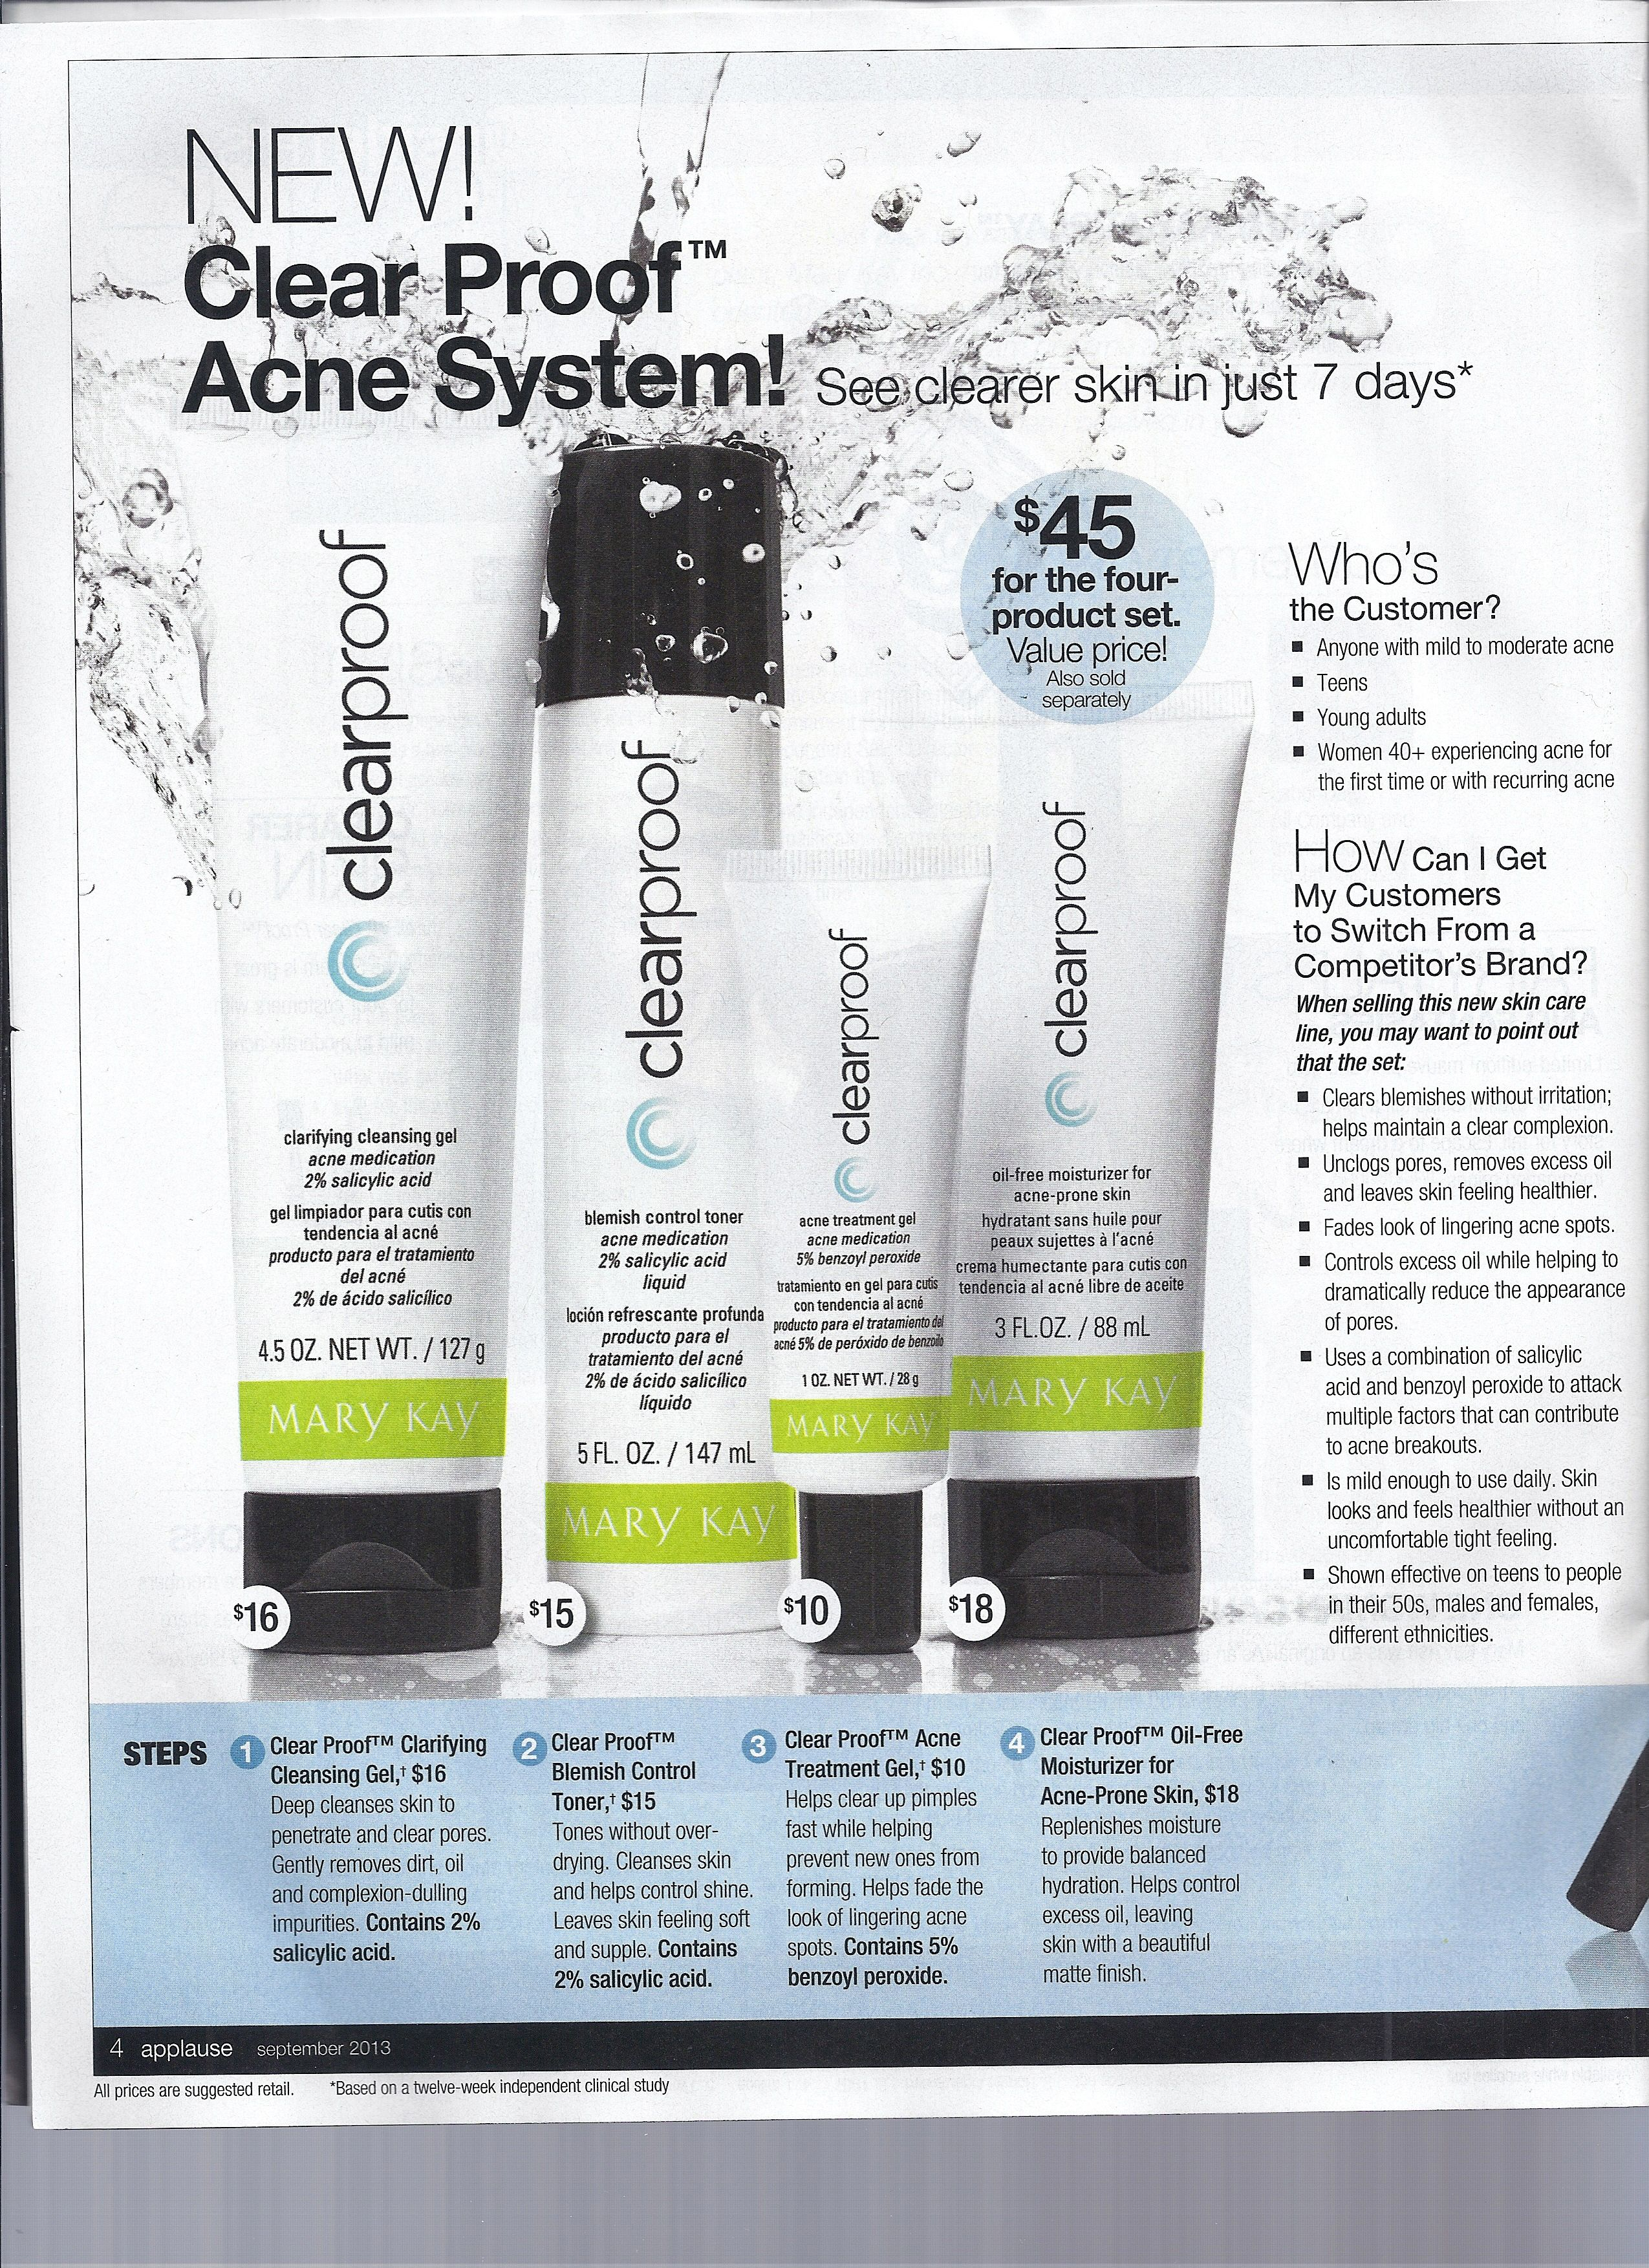 NEW!! Mary Kay's ClearProof Acne System. See clearer skin